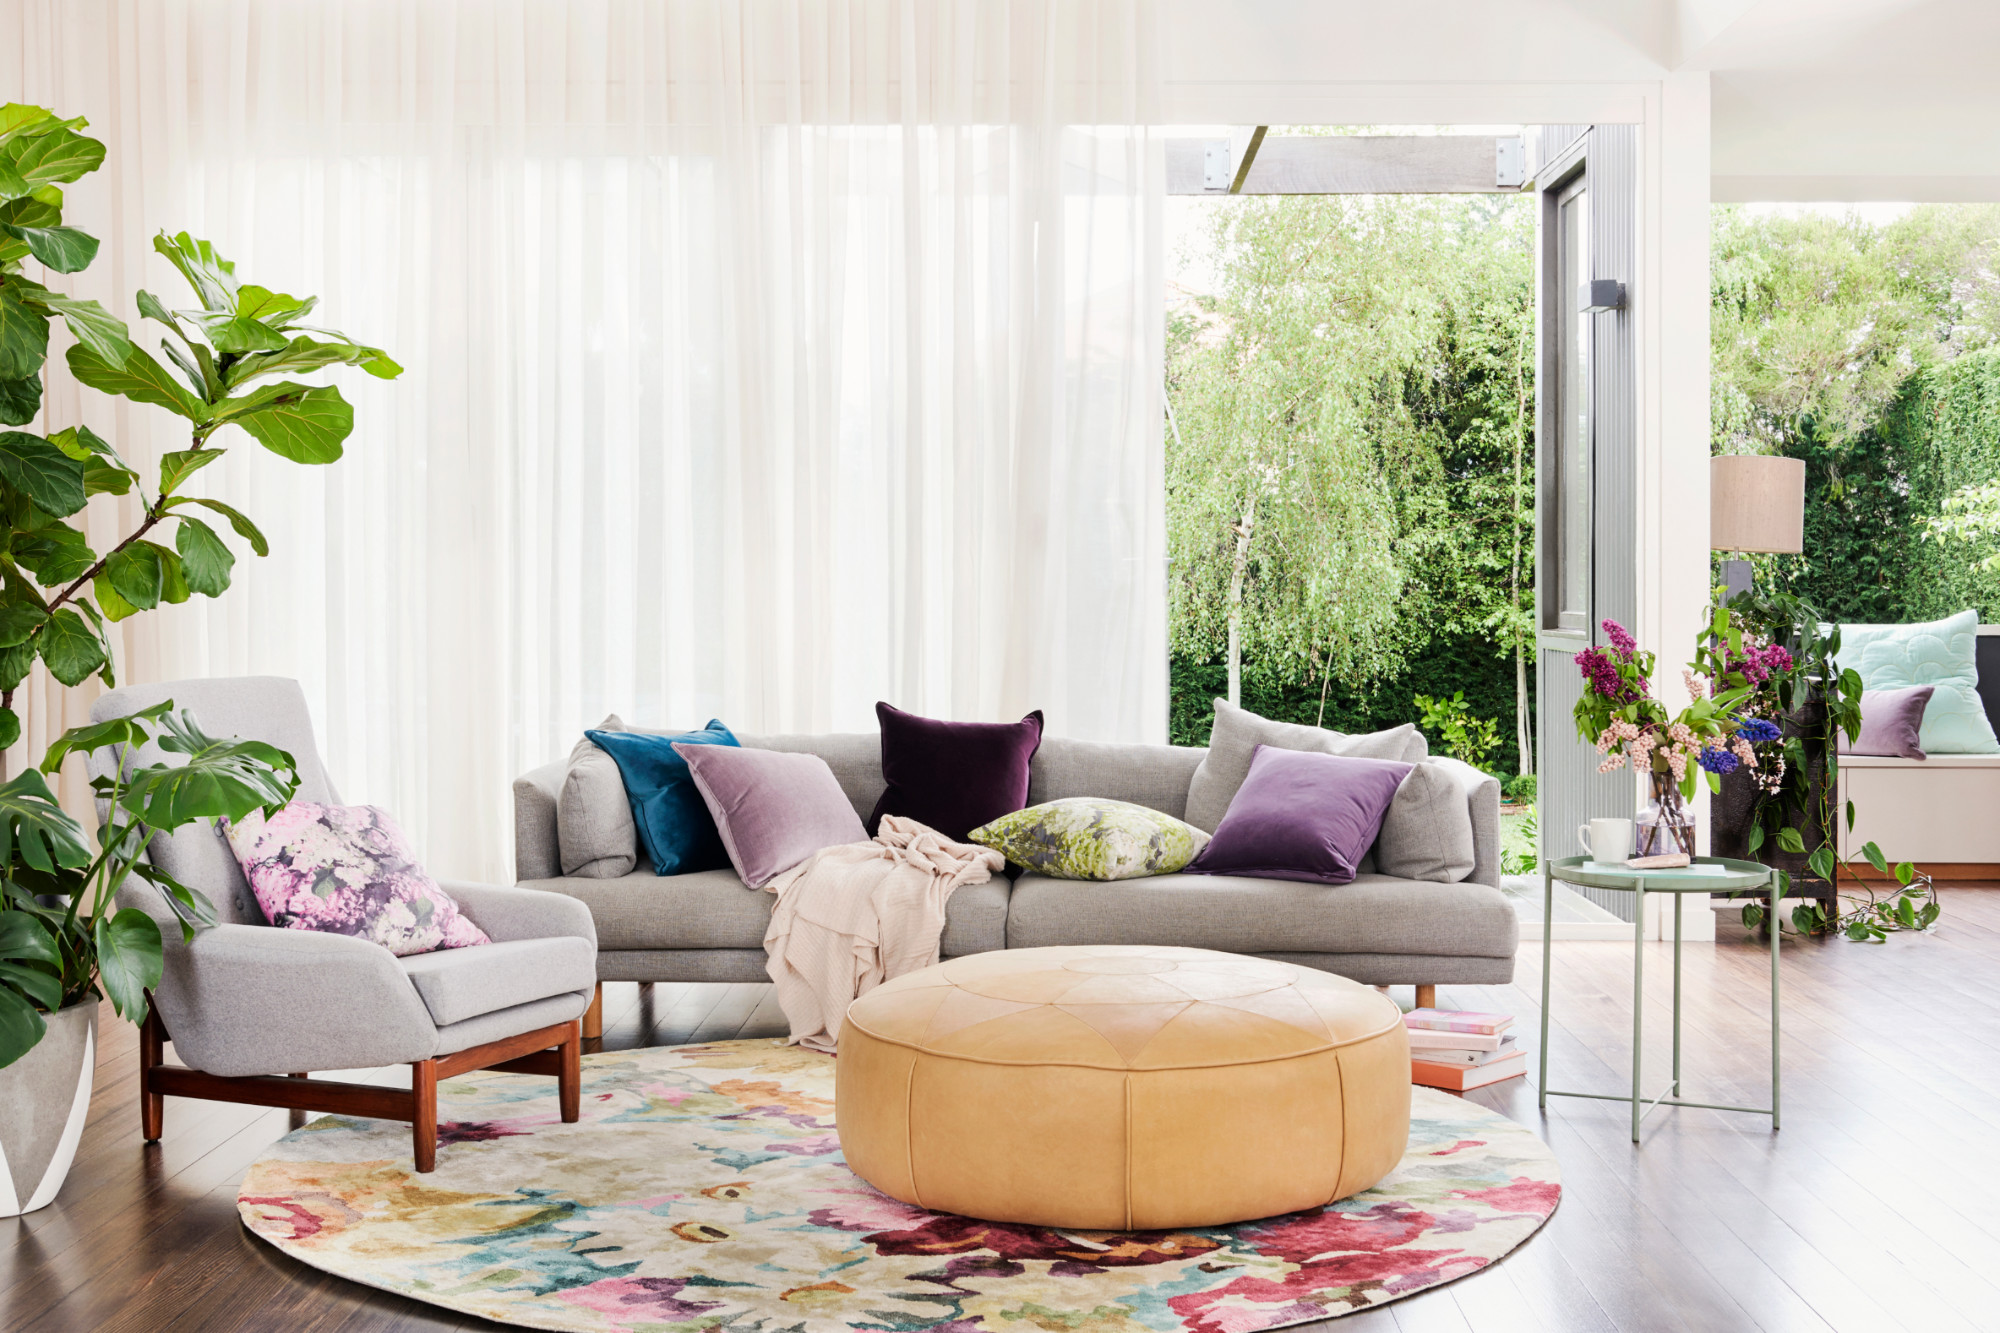 BRAX lounge sheer curtains styled by julia green.jpg